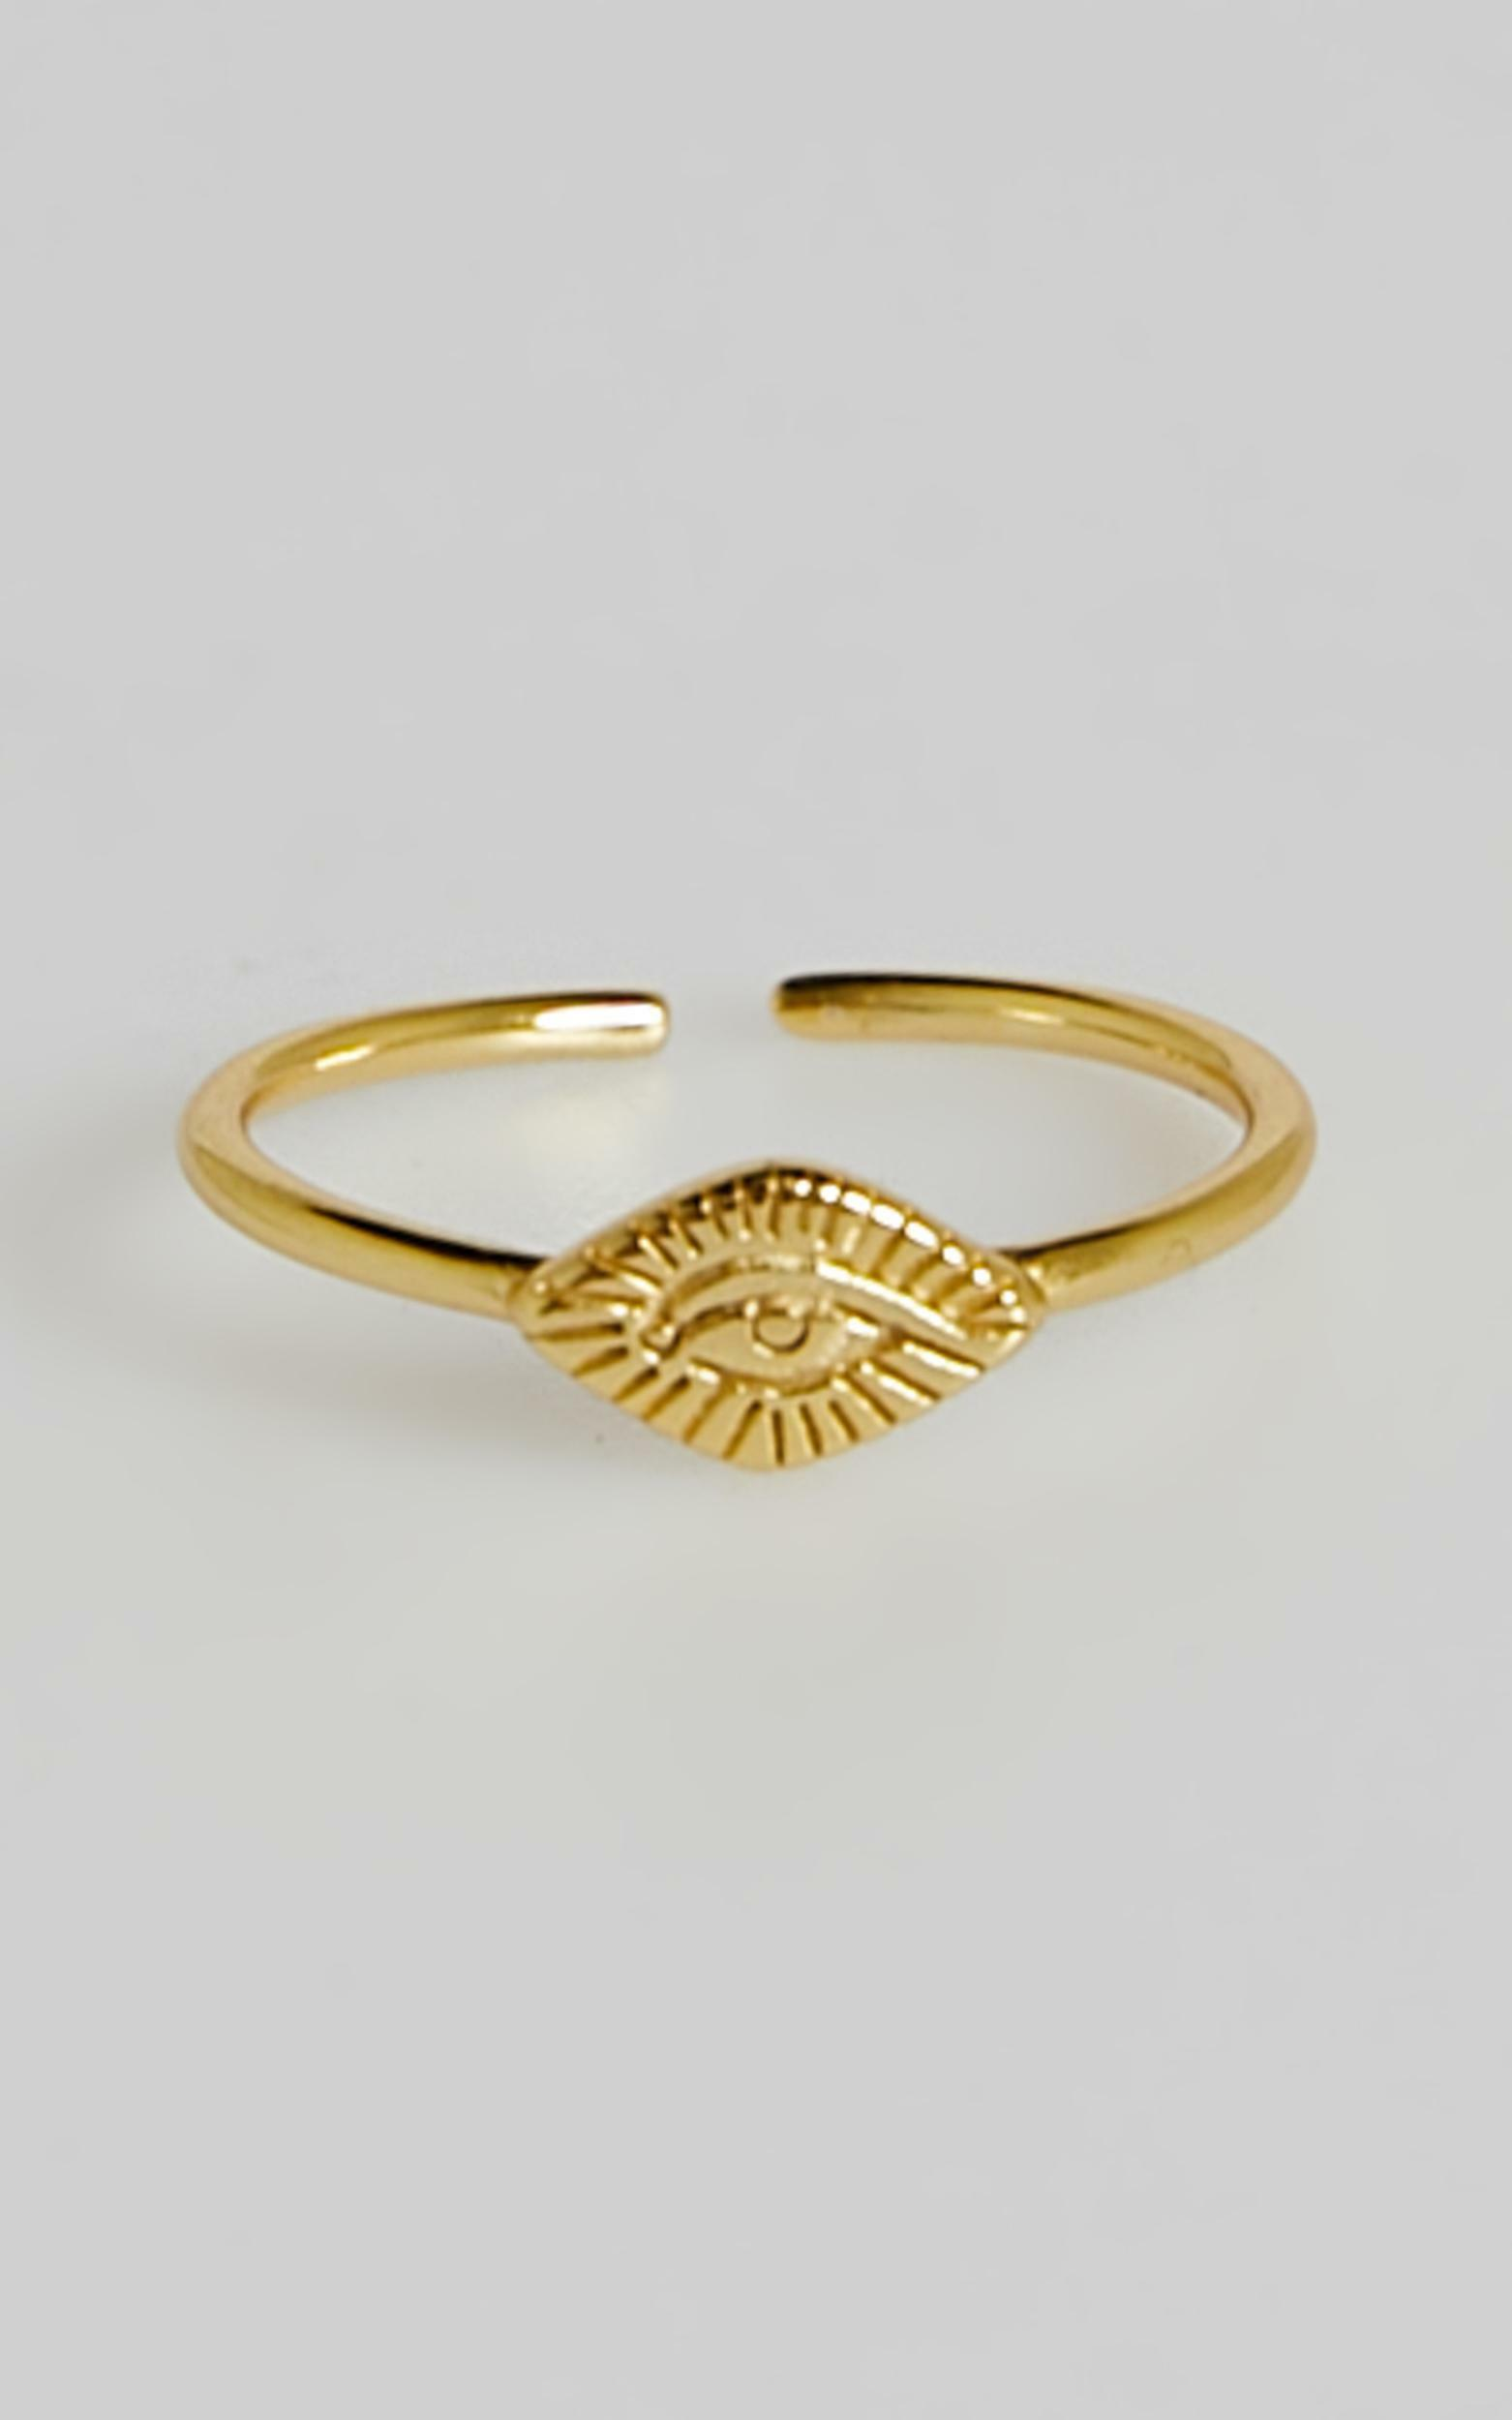 Izoa - Egyptian Eye Ring in Gold, GLD1, hi-res image number null